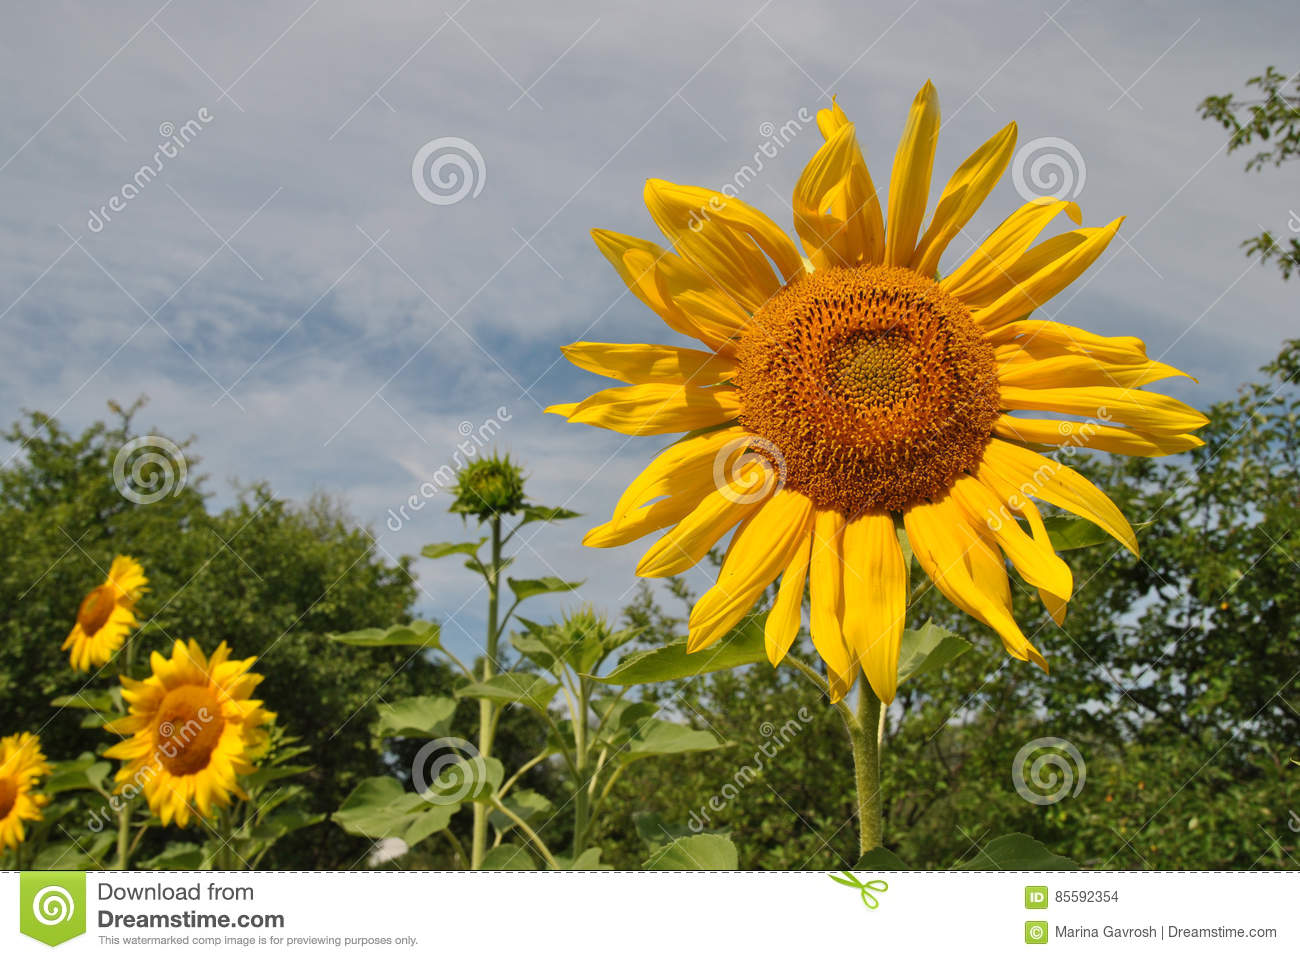 Cheerful Sunflower A Symbol Of Joy Happiness And Fun Olorful